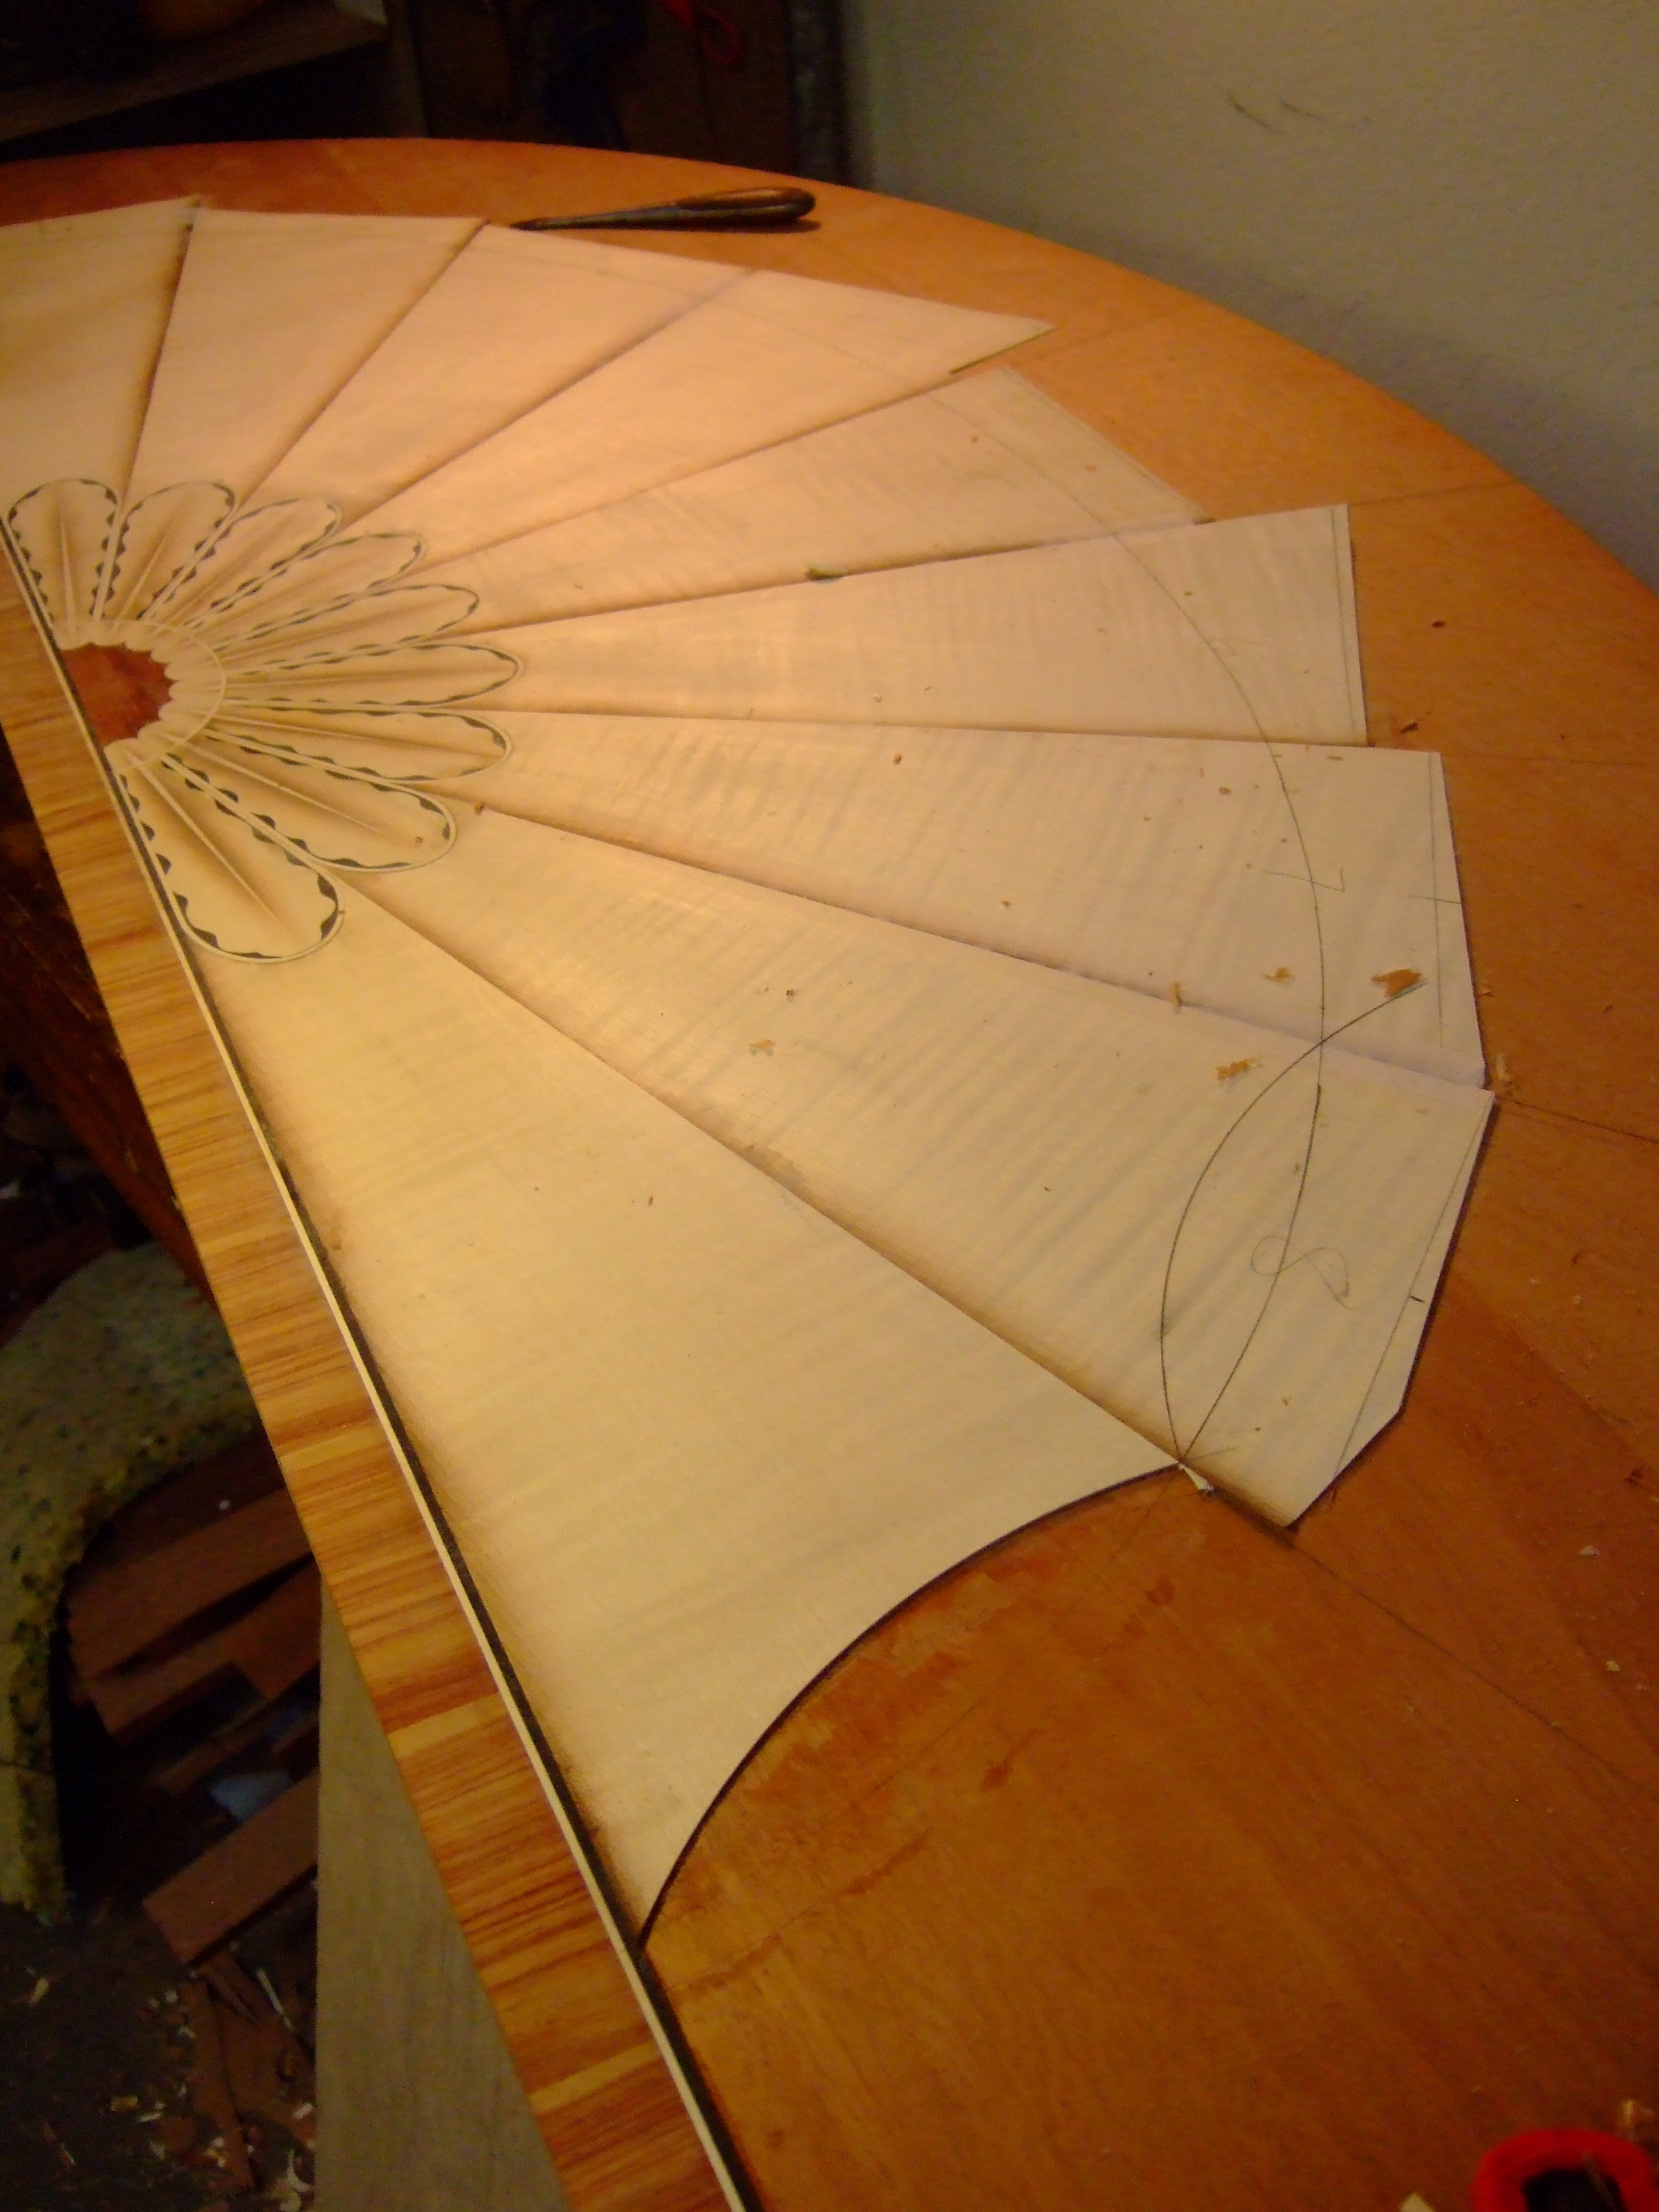 Shaping the sand shaded sycamore fan after veneering the pieces to the mahogany core.